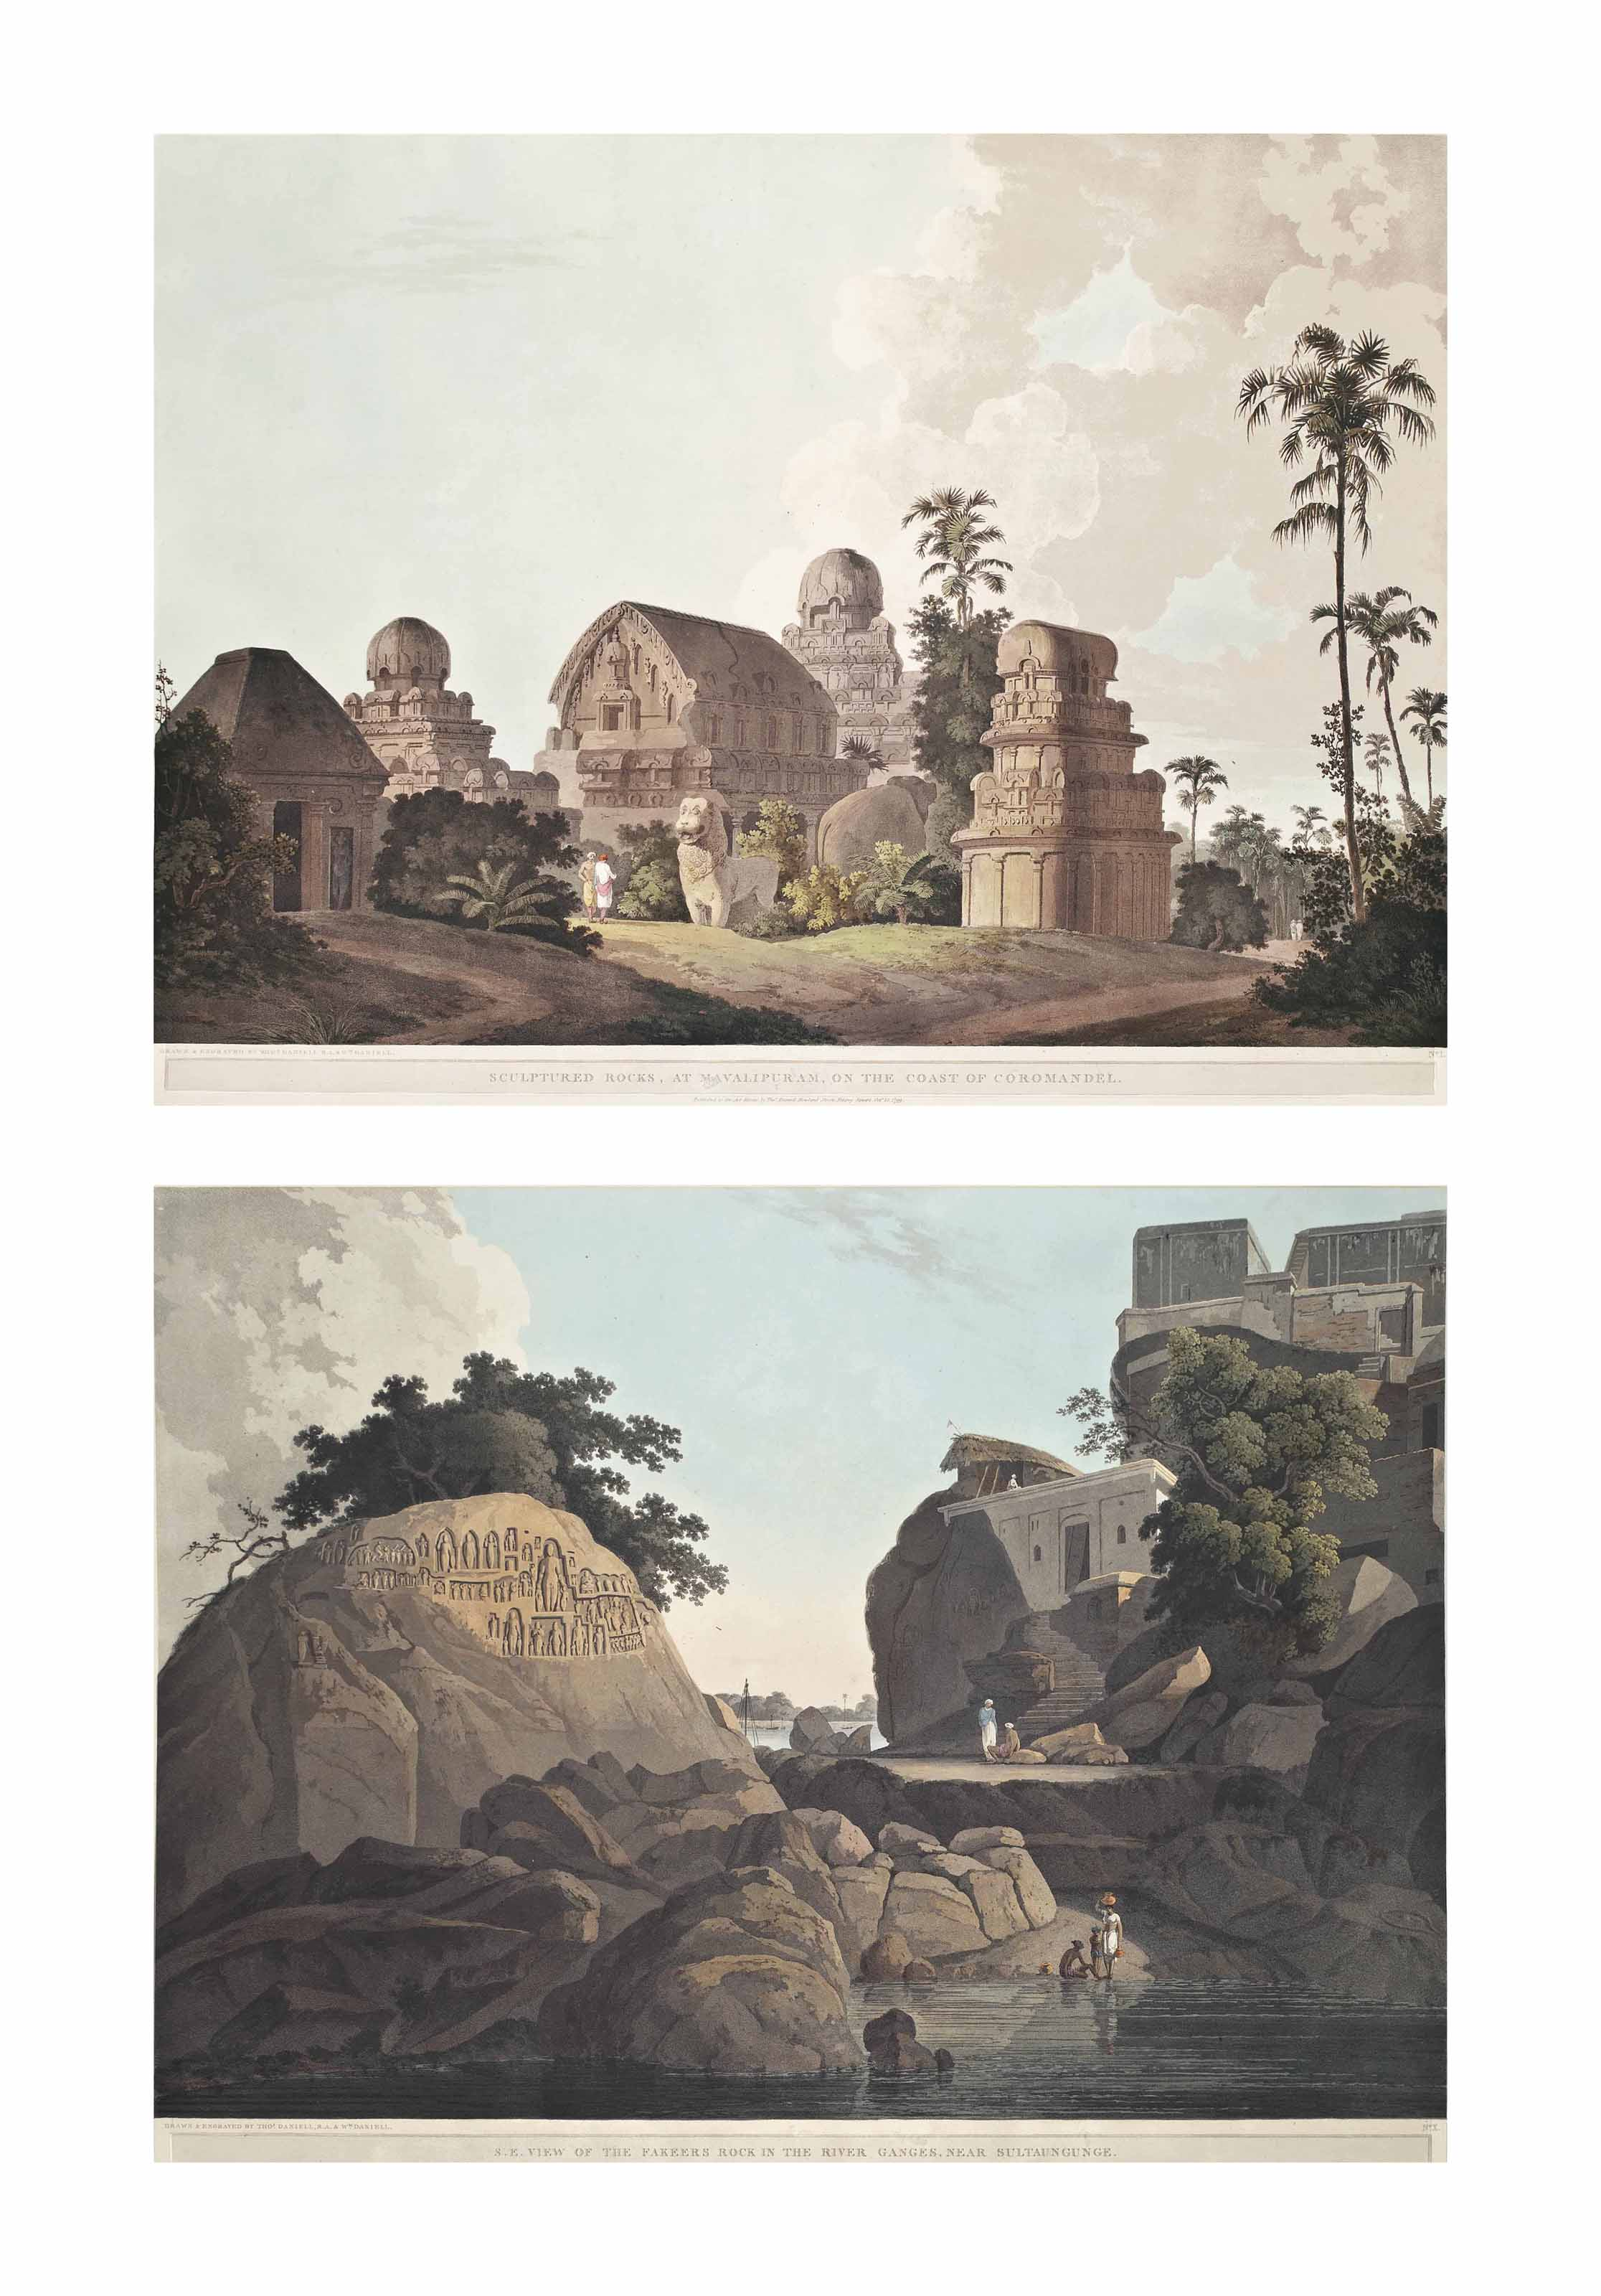 Sculptured Rocks, at Mavalipuram, on the Coast of Coromandel; The Entrance of an Excavated Hindoo Temple, at Mavalipuram; An Excavated Temple on the Island of Salsette; The Portico of an Excavated Temple on the Island of Salsette; An Hindoo Temple, at Deo, in Bahar; Part of the Interior of an Hindoo Temple, at Deo, in Bahar; The Entrance to the Elephanta Cave; Part of the Interior of the Elephanta; S.W. View of the Fakeers Rock in the River Ganges, near Sultaungunge; S.E. View of the Fakeers Rock in the River Ganges, near Sultaungunge; Part of the Kanaree Caves, Salsette; and The Interior of an Excavated Hindoo Temple, on the Island of Salsette (Abbey Travel 420, pls. 52-63)